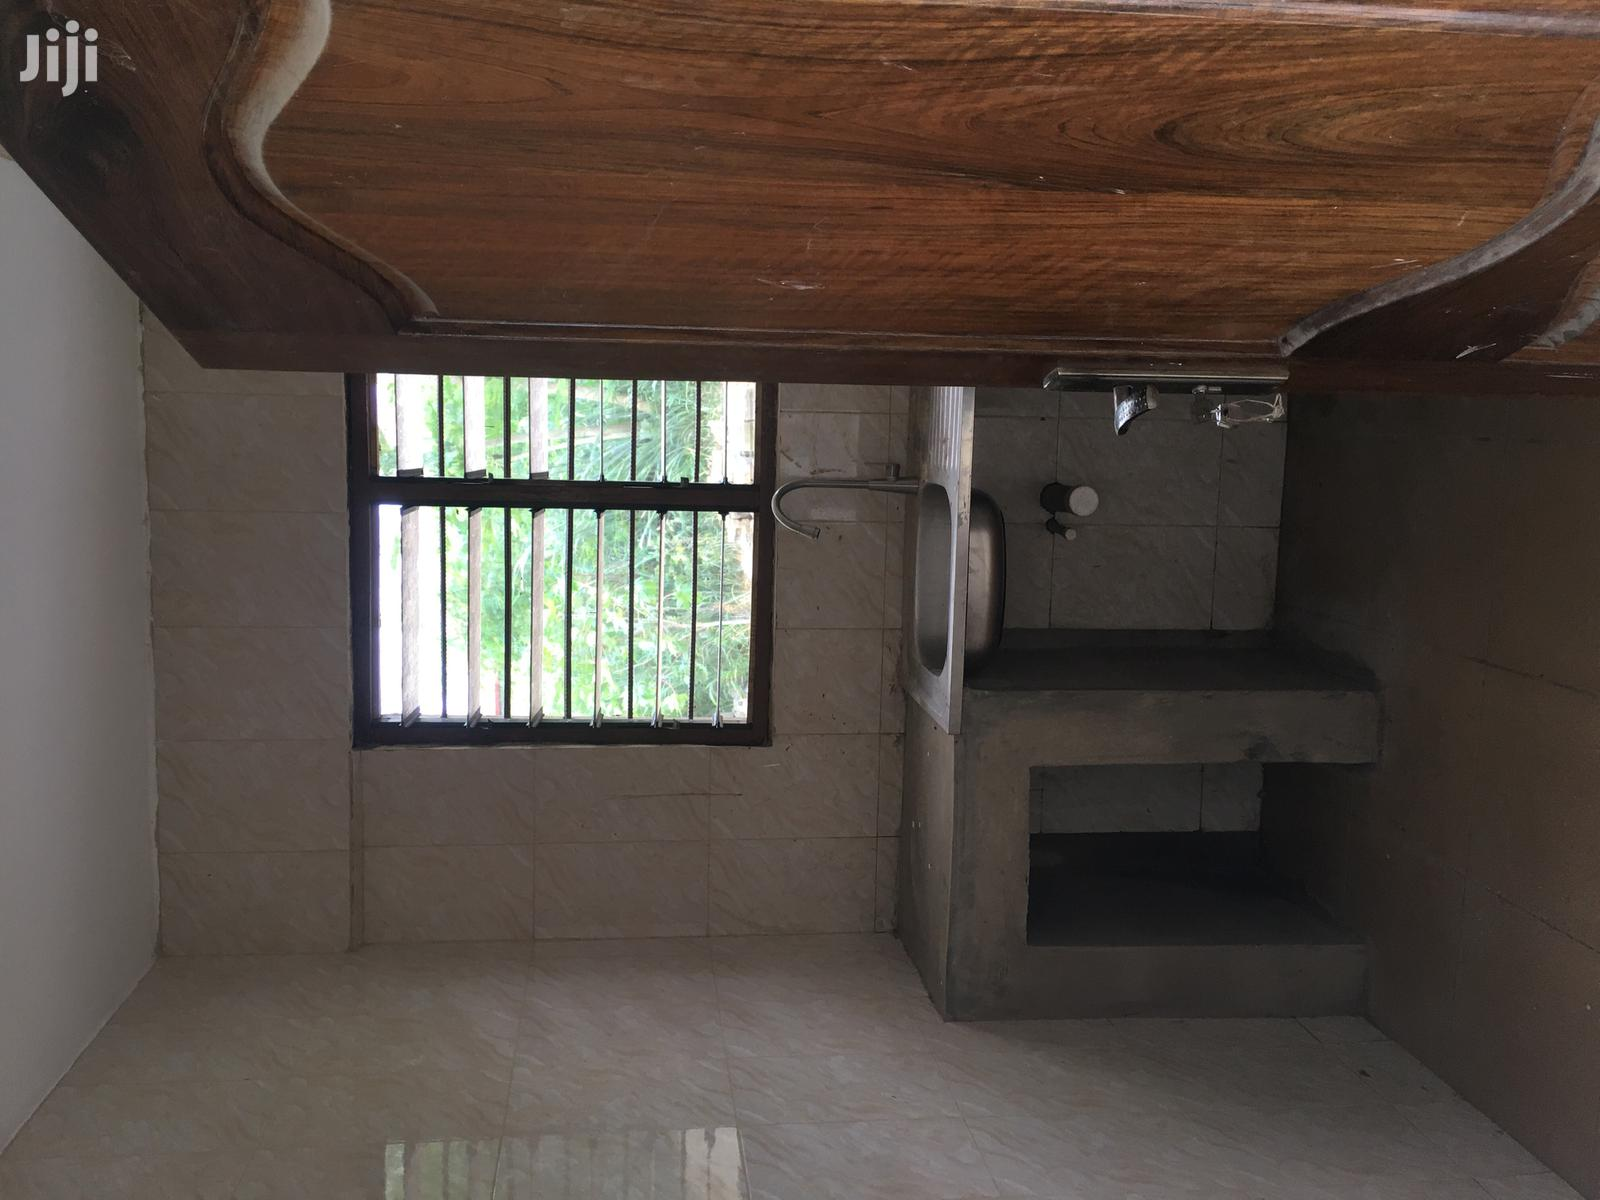 House For Rent | Houses & Apartments For Rent for sale in Awutu-Senya, Central Region, Ghana